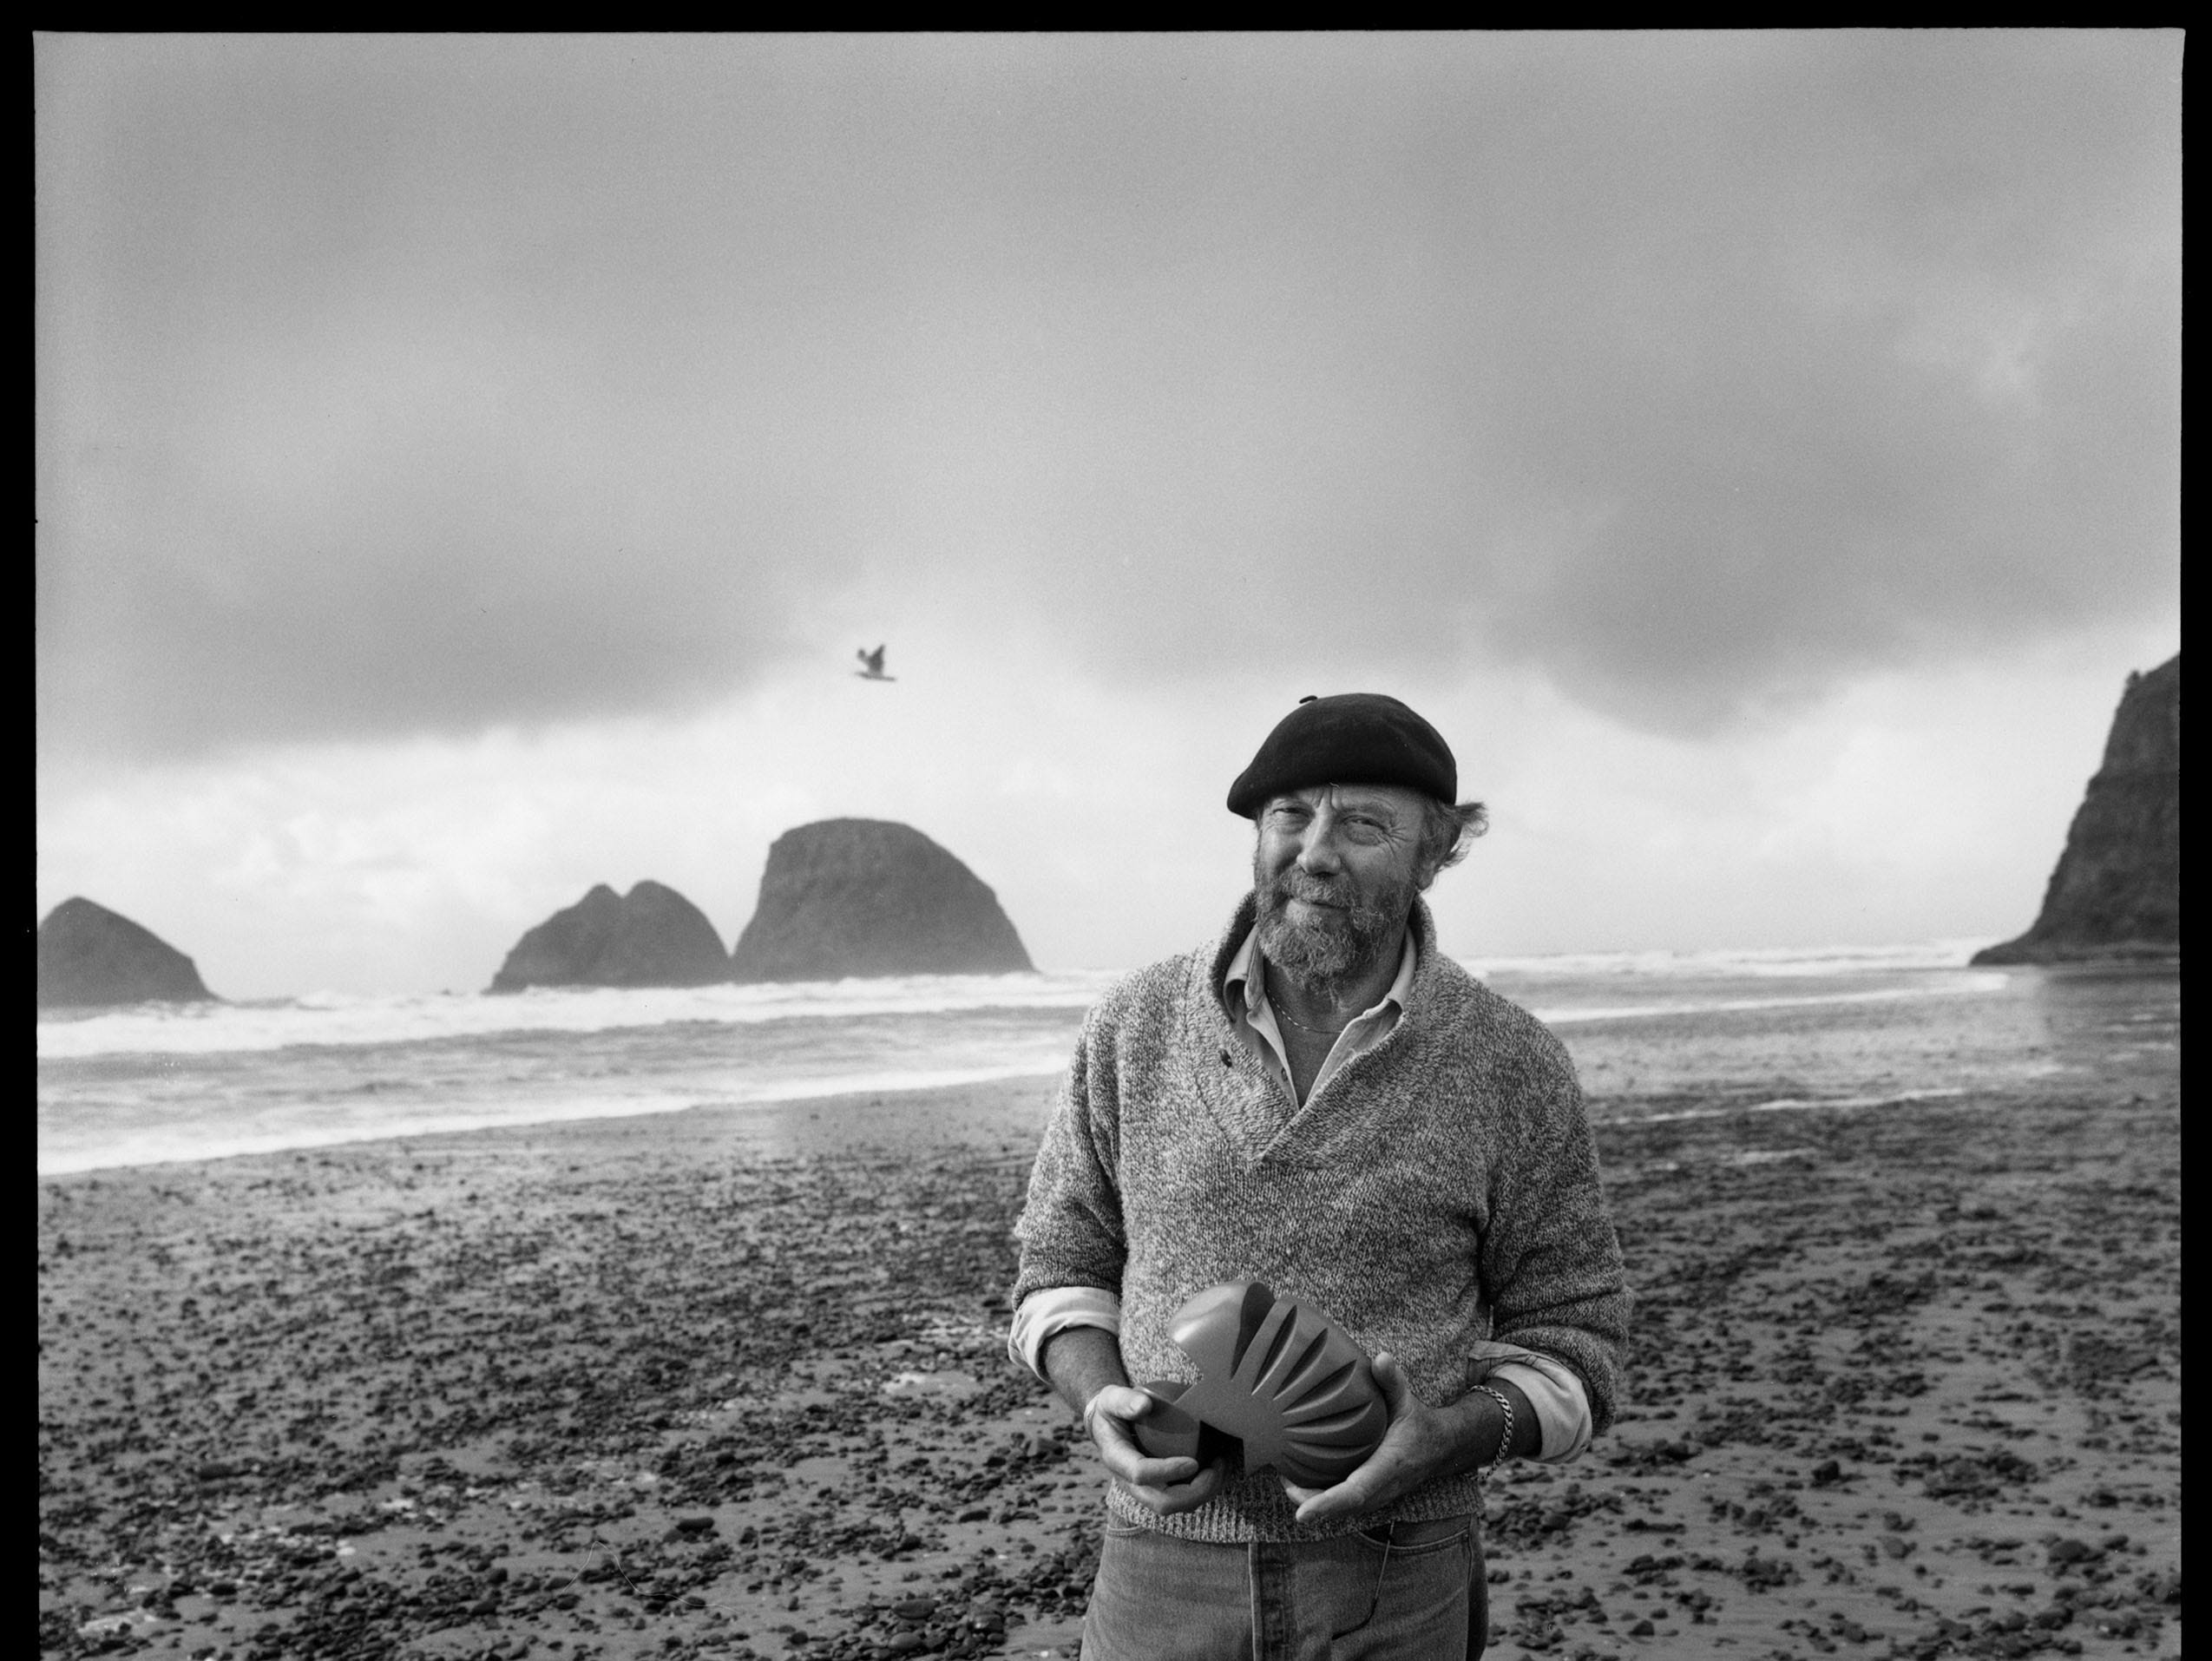 """""""John R. Stahl: Oregon Artist"""": This exhibition celebrates the life and legacy of Stahl (1937-2017) and features a wide range his works created over a 45 year span, opens Saturday, May 11 through Aug. 11, Hallie Ford Museum of Art, Study Gallery and Print Study Center, 700 State St.willamette.edu/go/john-stahl."""